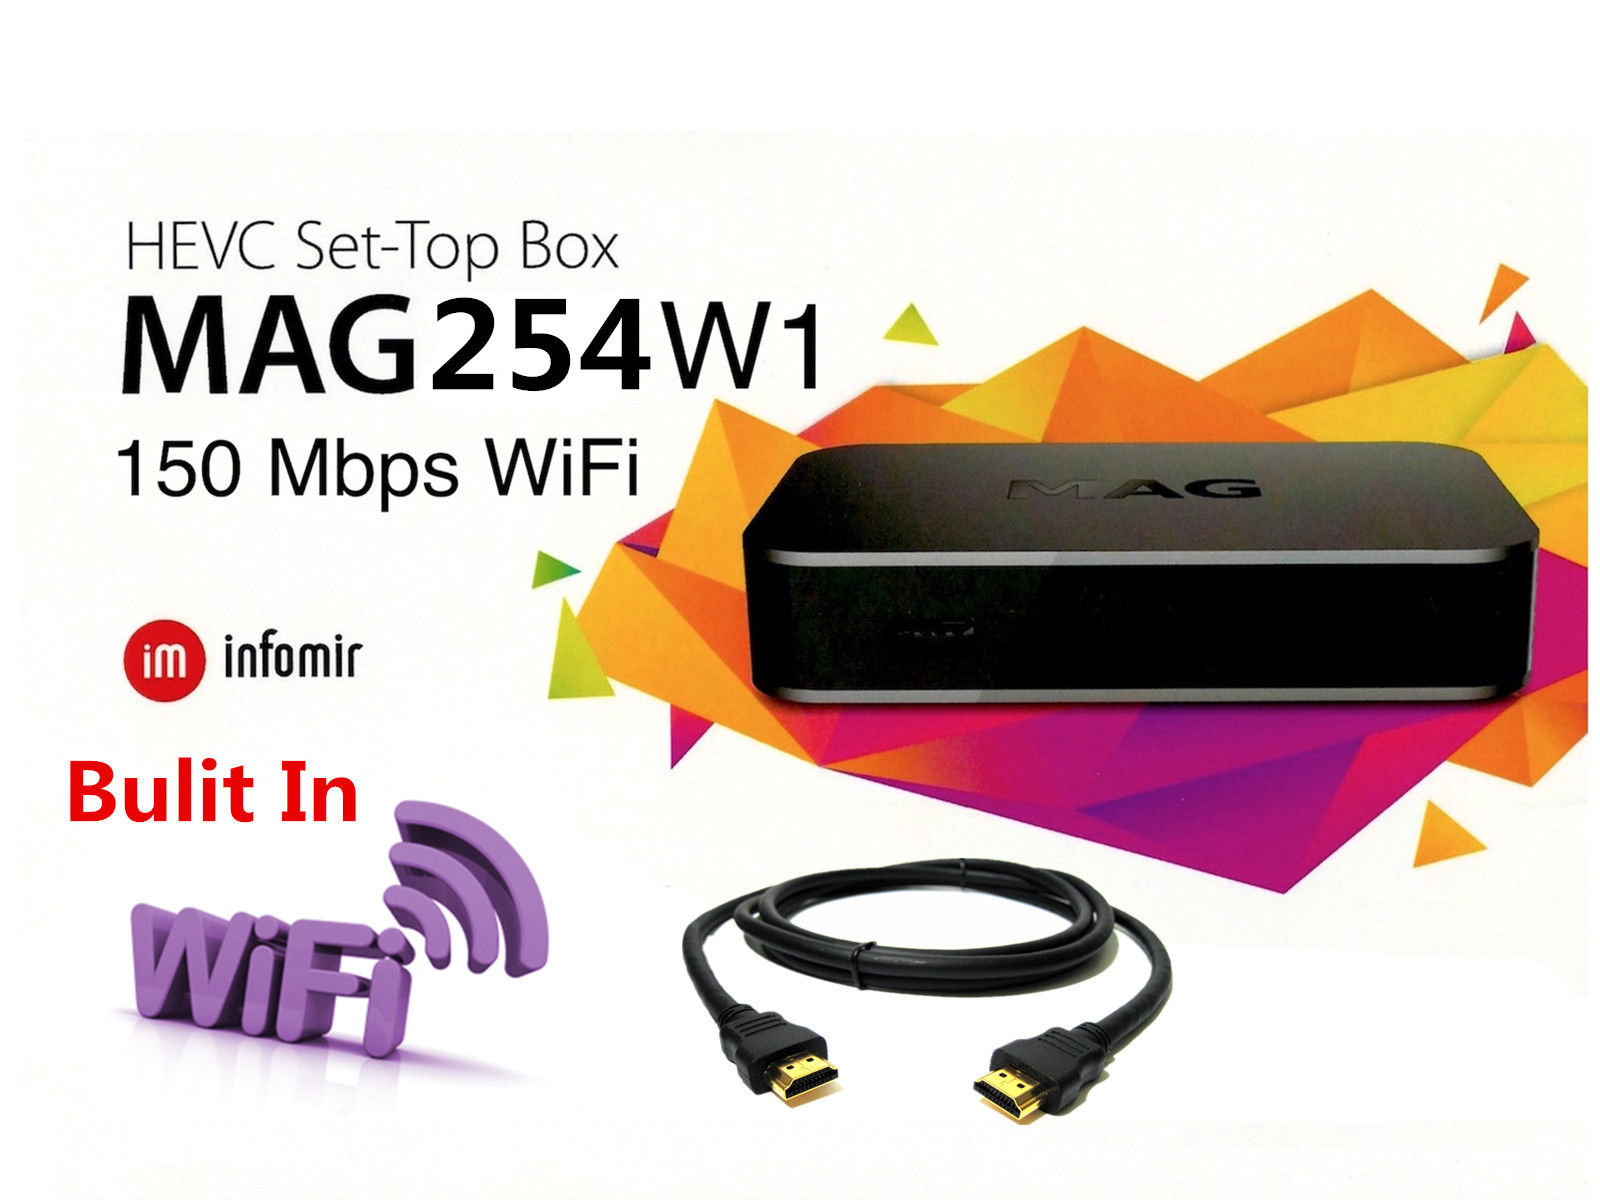 MAG254W1: Genuine MAG 254 W1 Model Set-TOP-Box with 150Mbps Built-in WiFi by INFOMIR